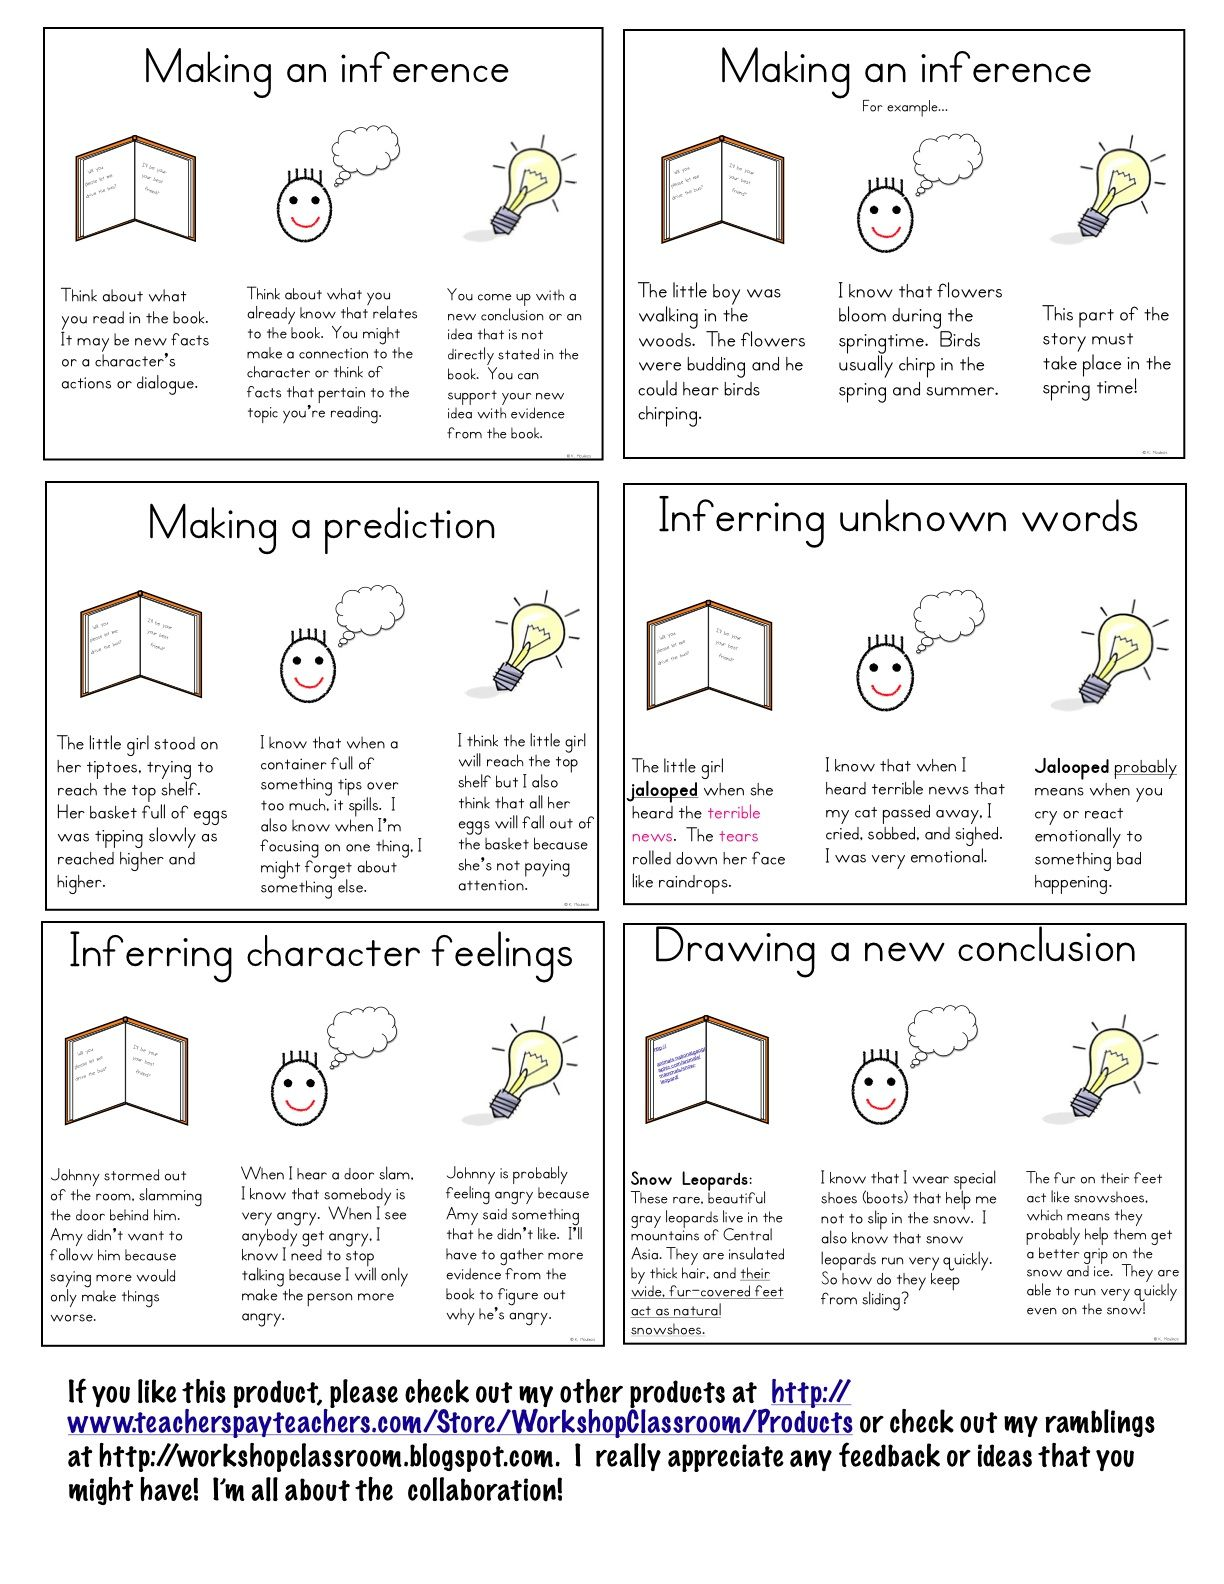 Free Worksheet Inference Worksheets 17 best images about inferencing on pinterest graphic organizers beautiful artwork and charts